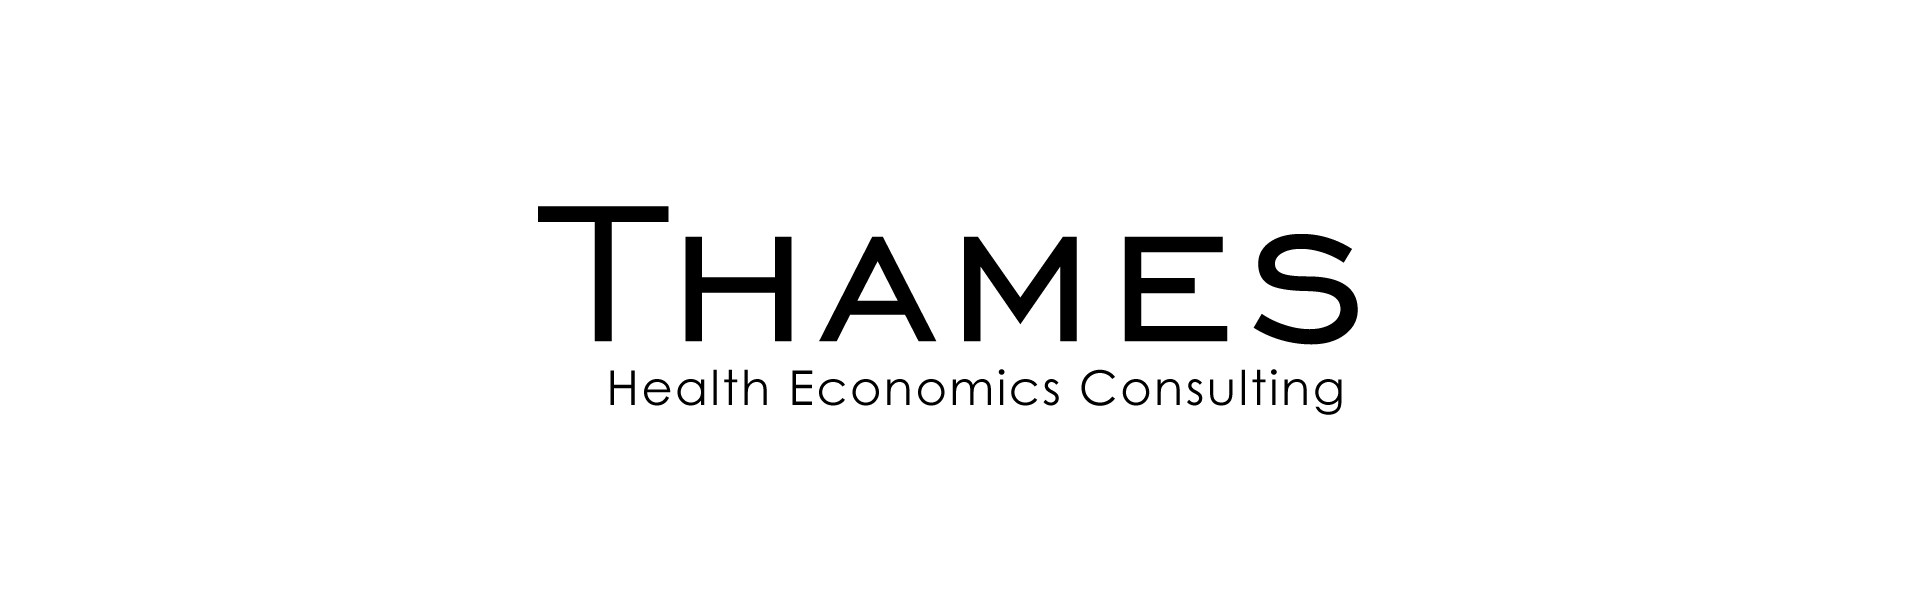 Thames Health Economics Limited